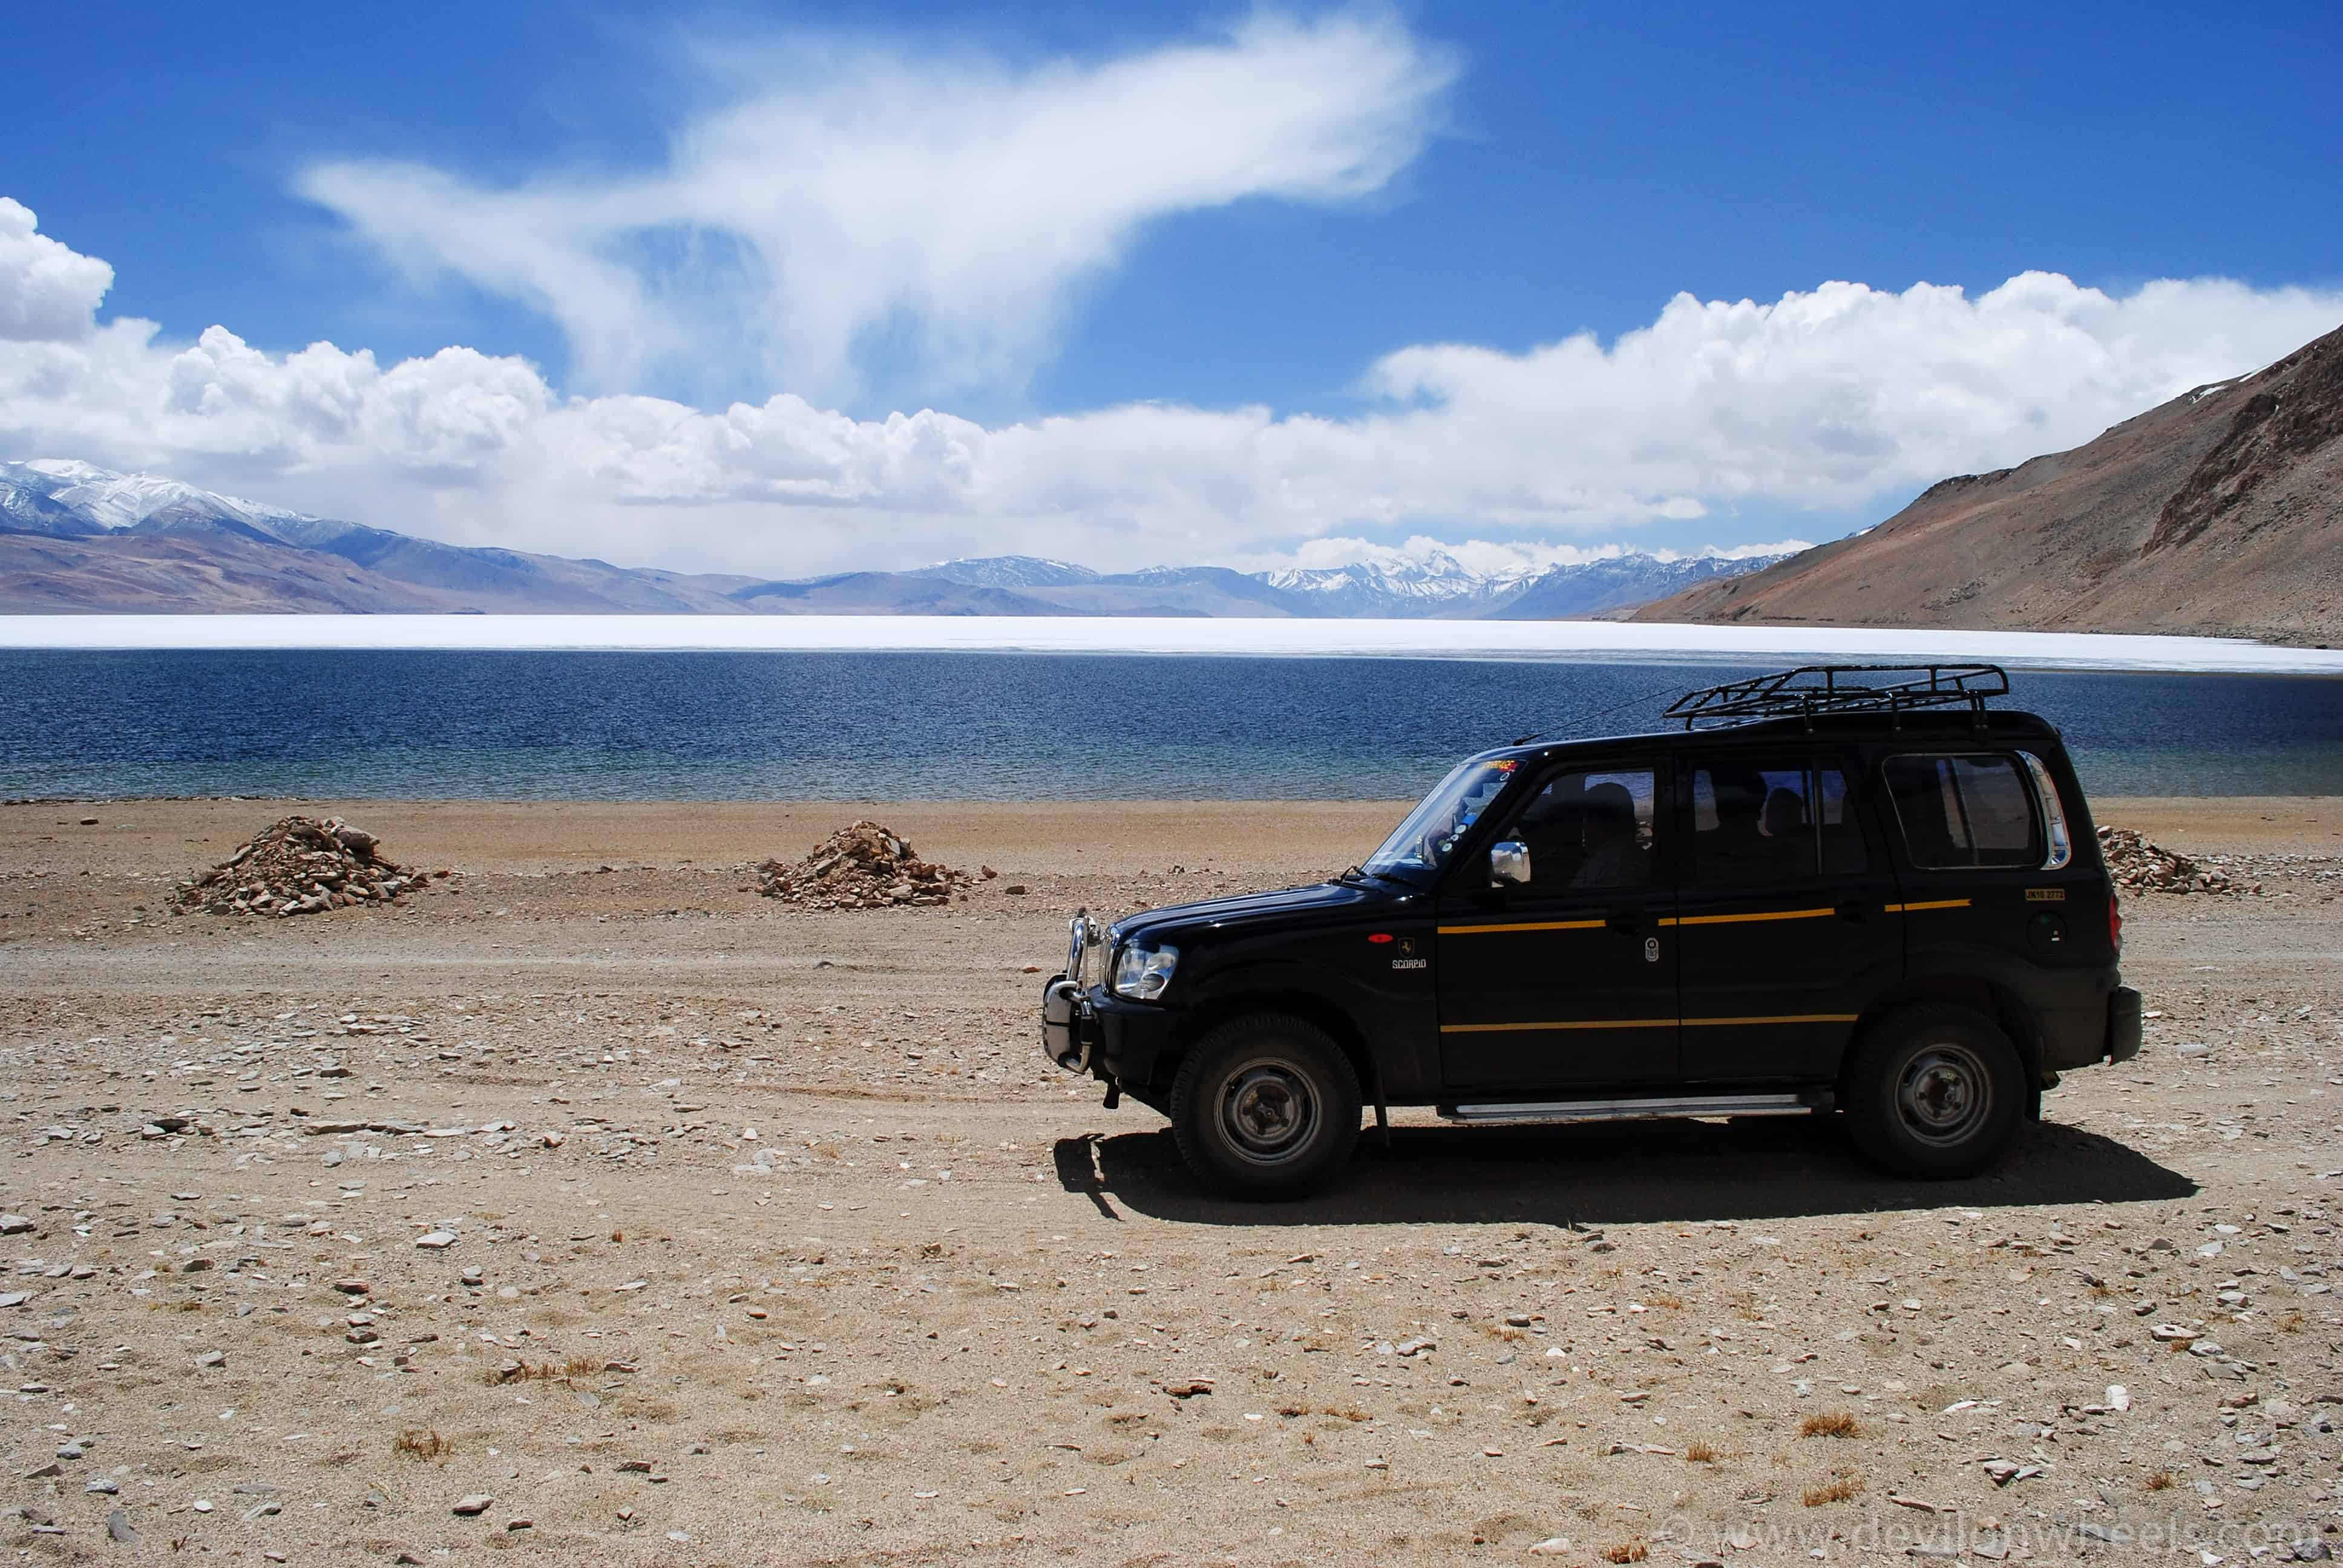 Local Taxi in Ladakh